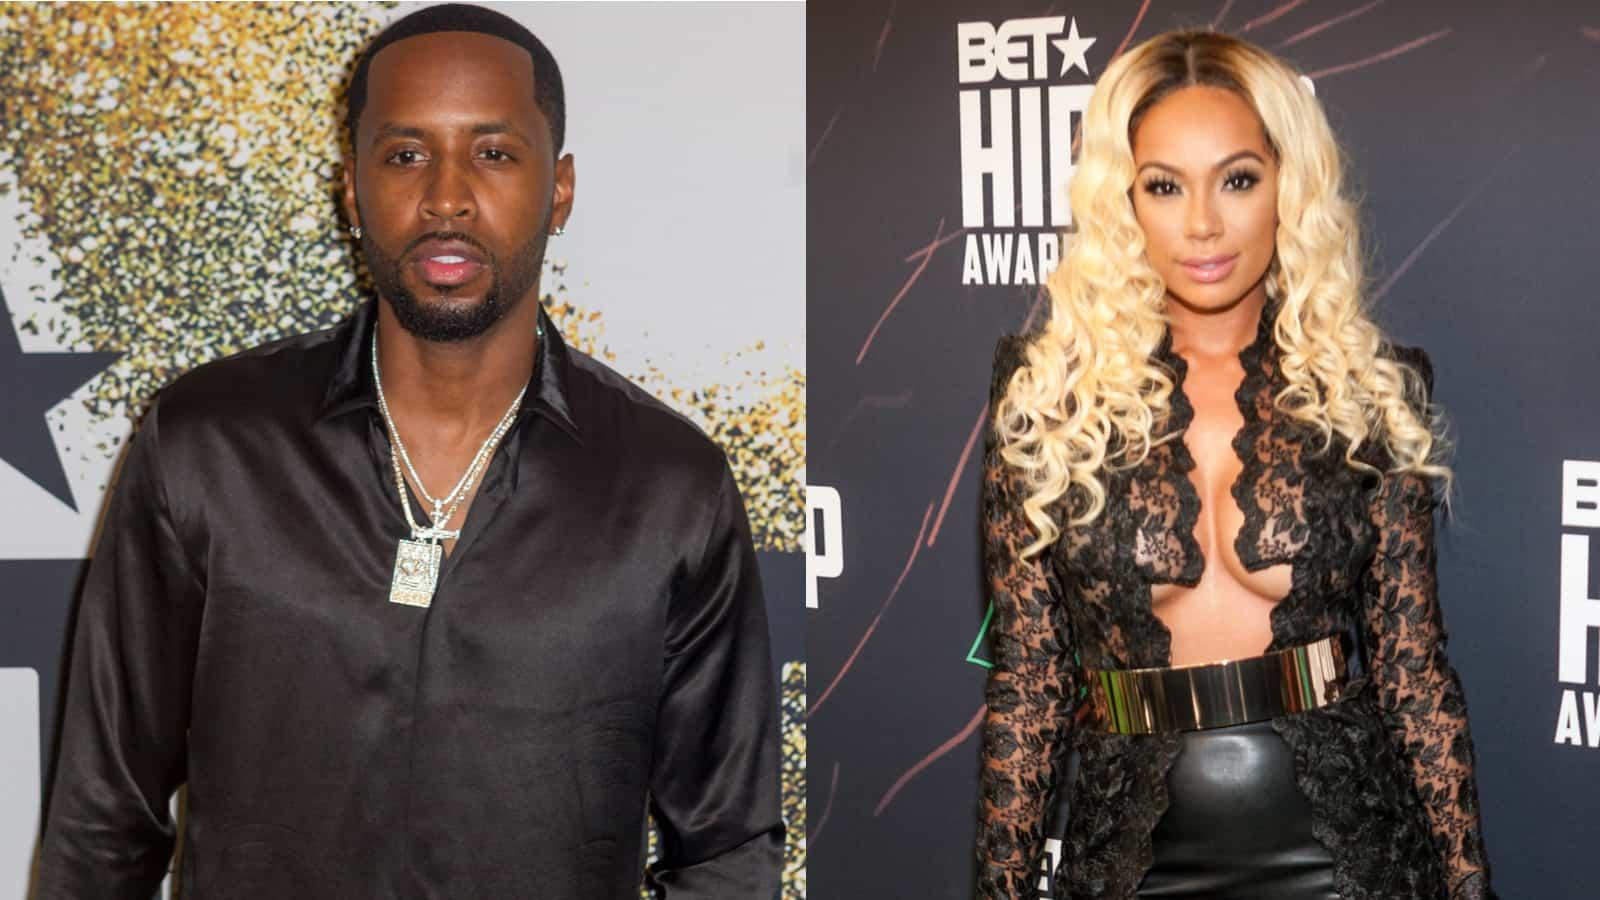 Erica Mena And Safaree May Be Preparing For A $350K Livestream Wedding After Sparking Pregnancy Rumors